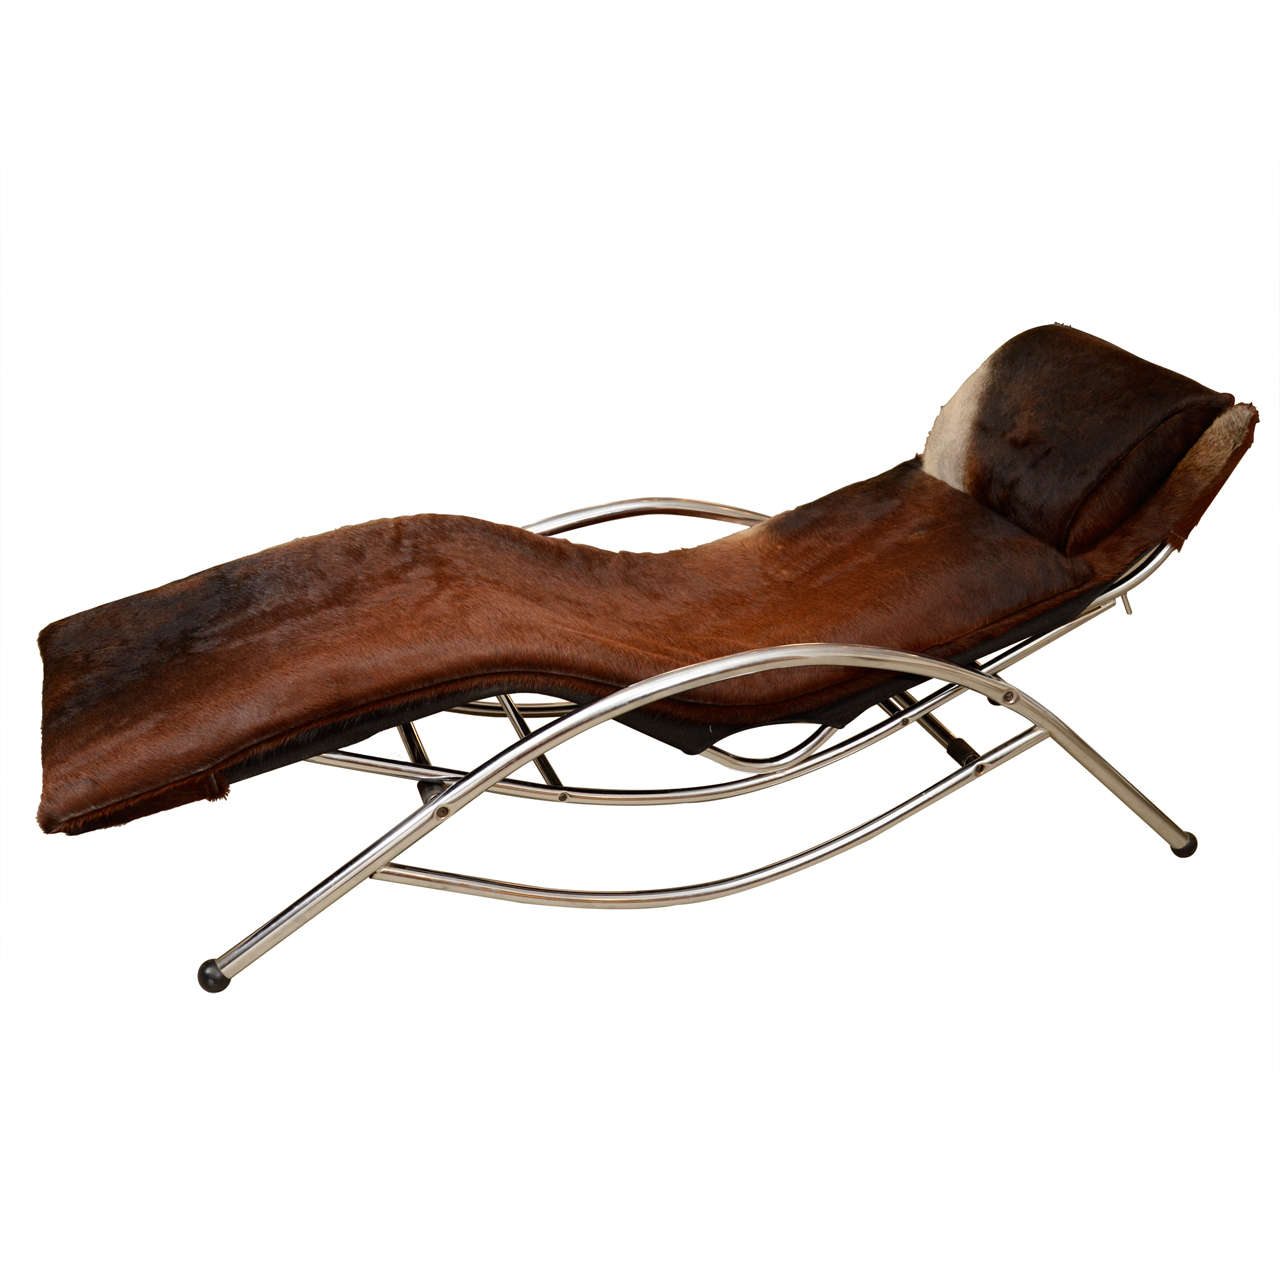 Italian chaise longue at 1stdibs for Xavier lust chaise 4p